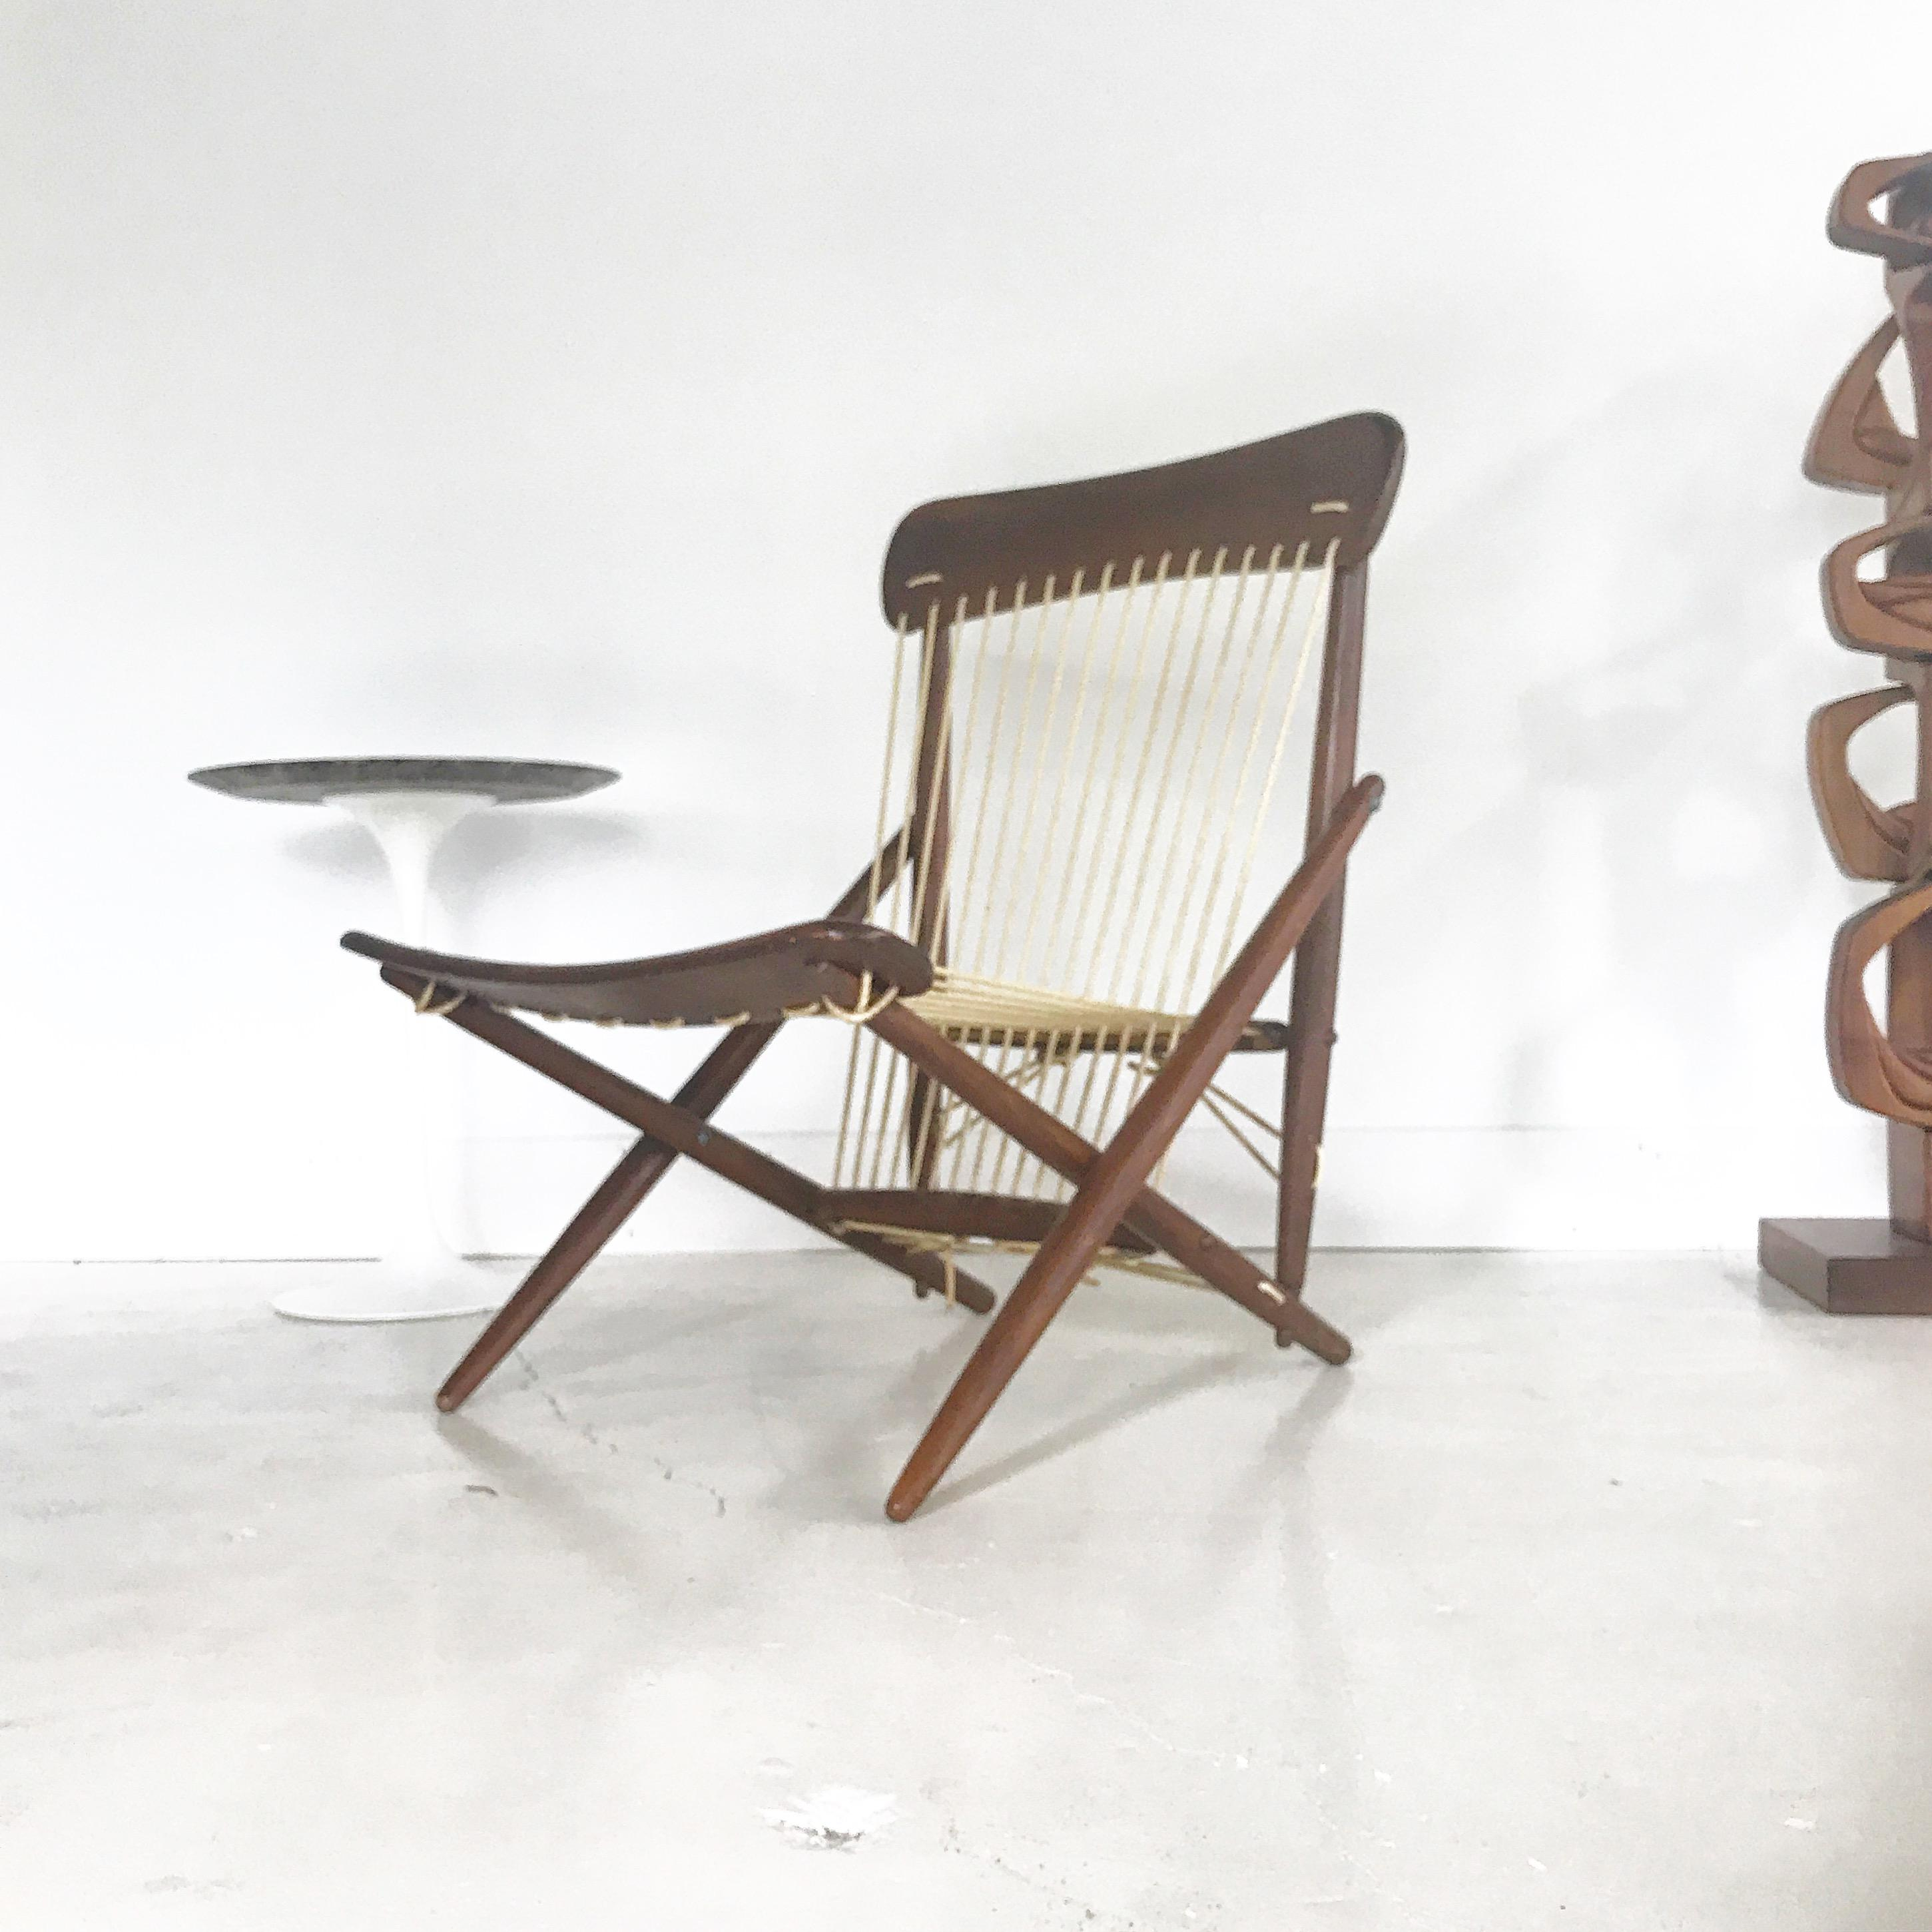 1950s japanese made lounge chair made of wood and rope great vintage condition & 1950s Japanese Maruni Rope and Wood Lounge Chair | Chairish